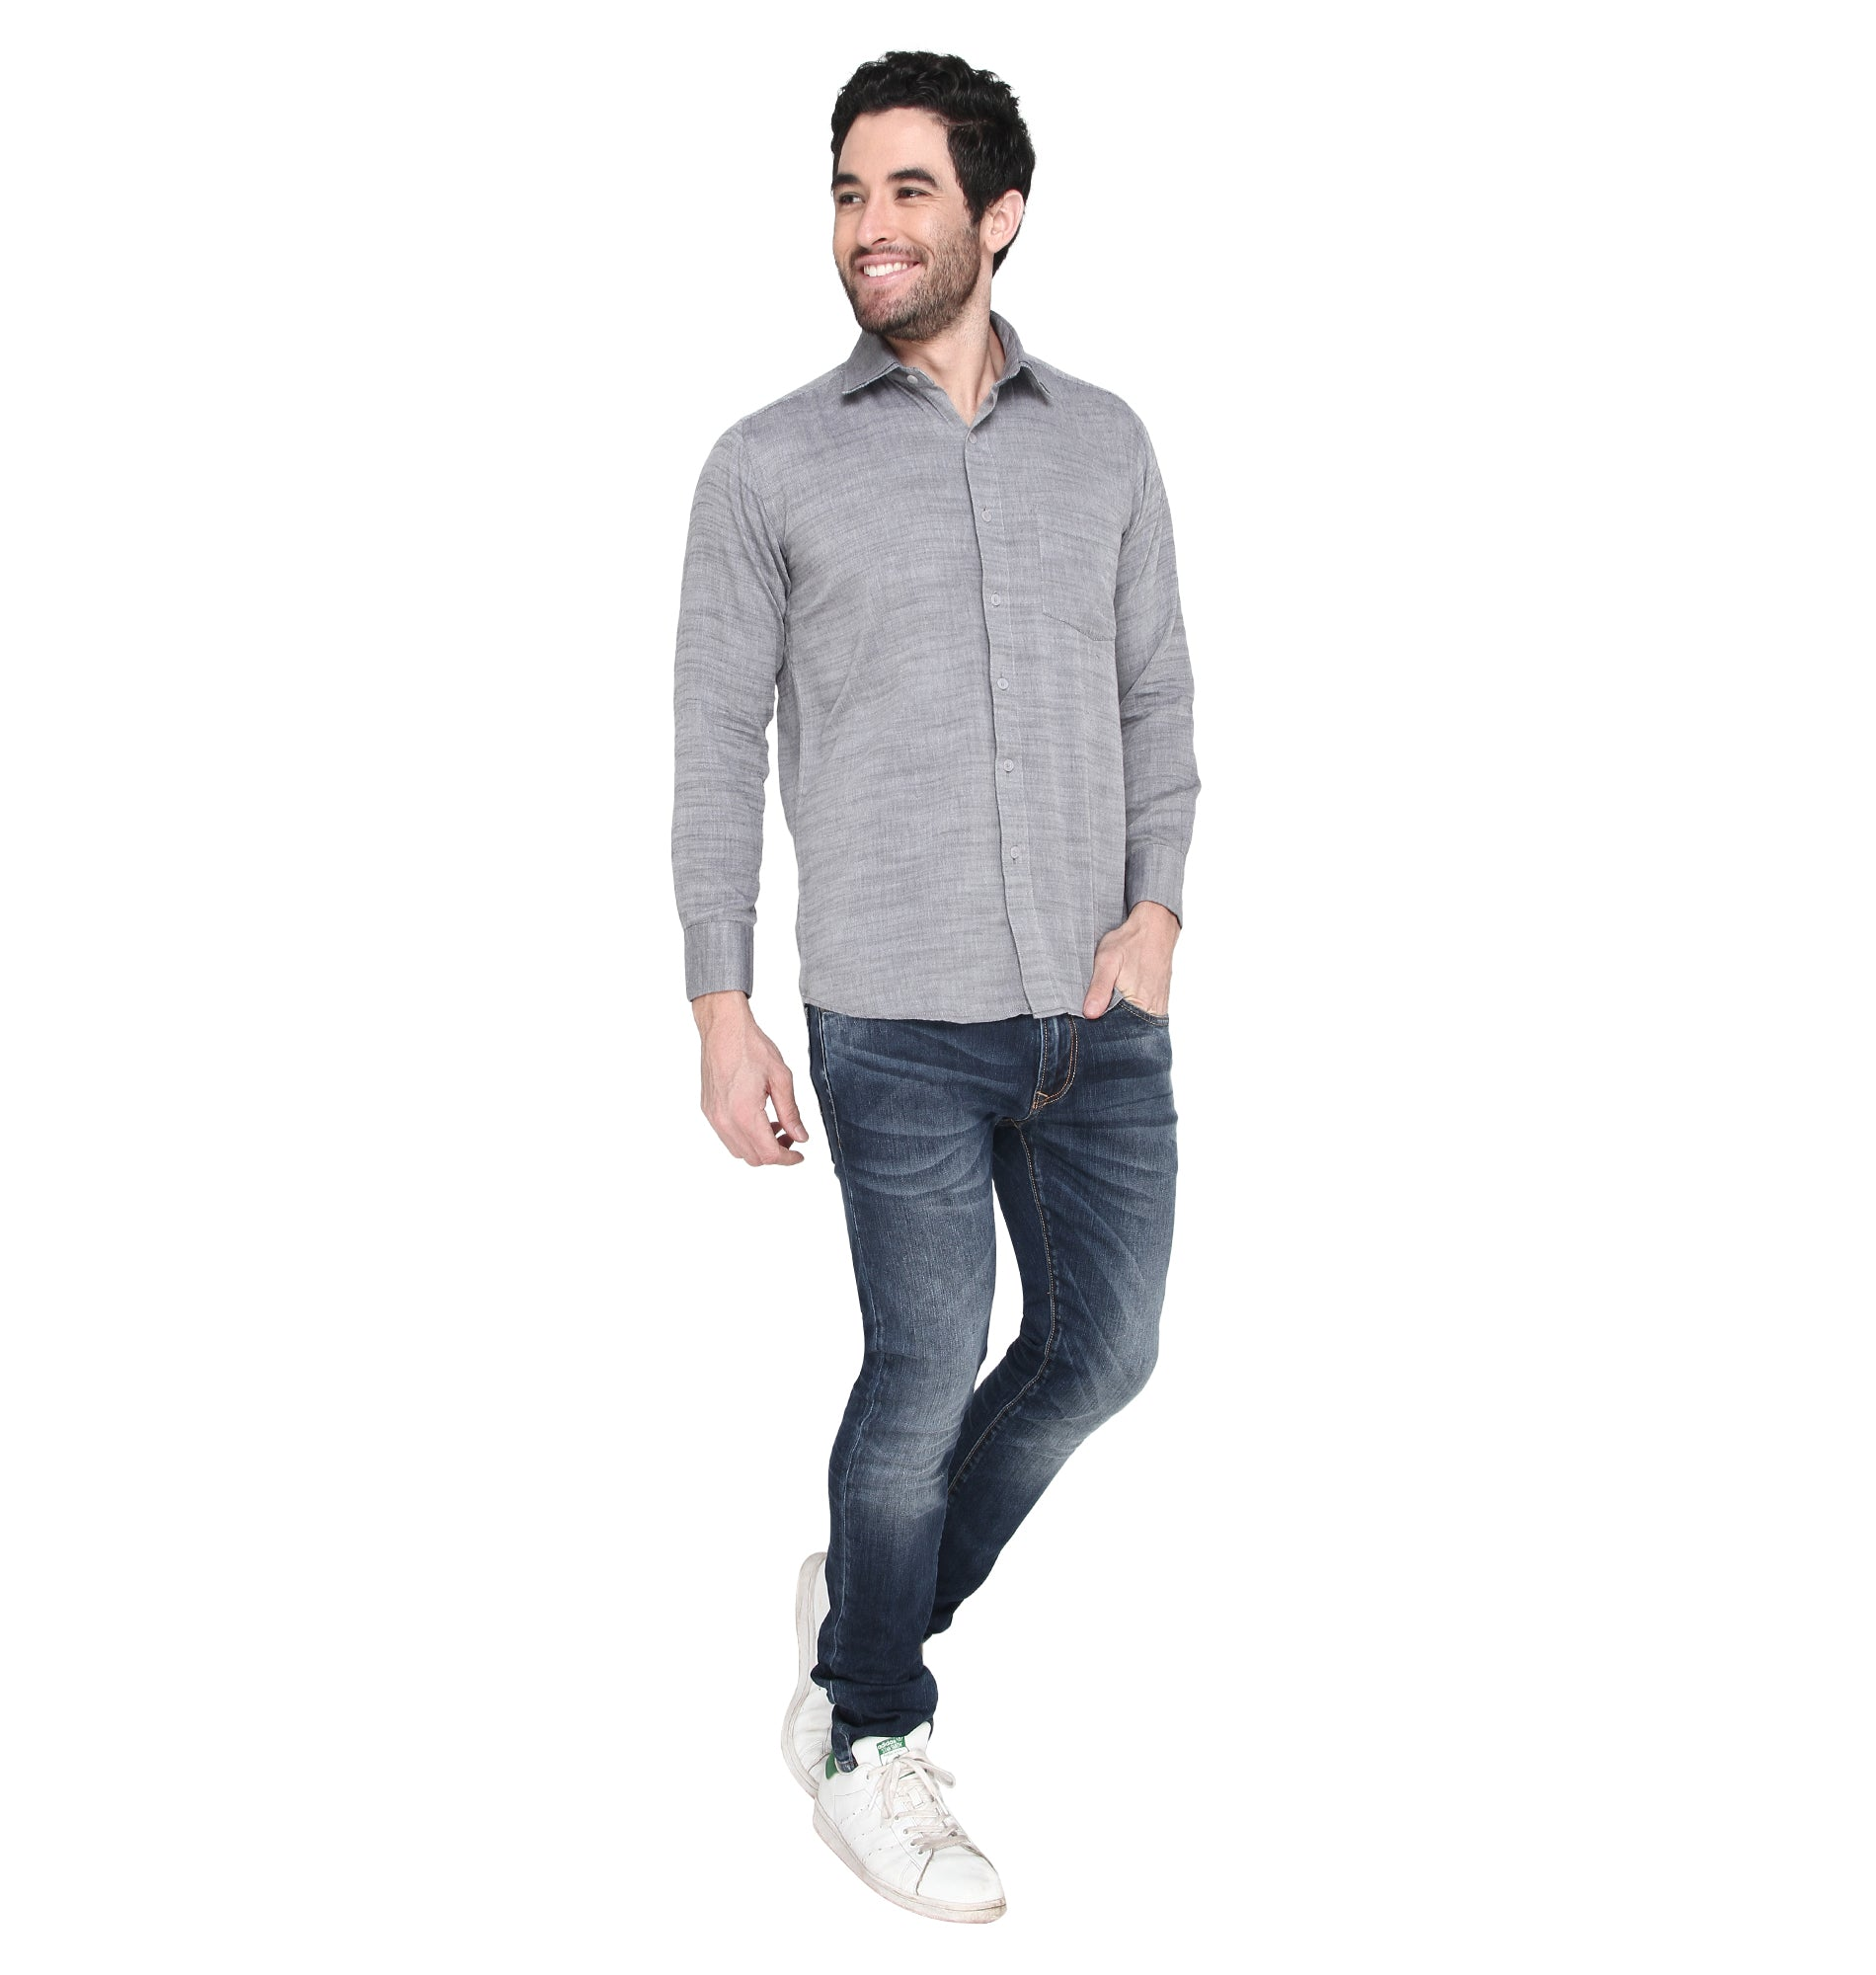 ZIDO COTTON Solid Shirt for Men's BTRR1379